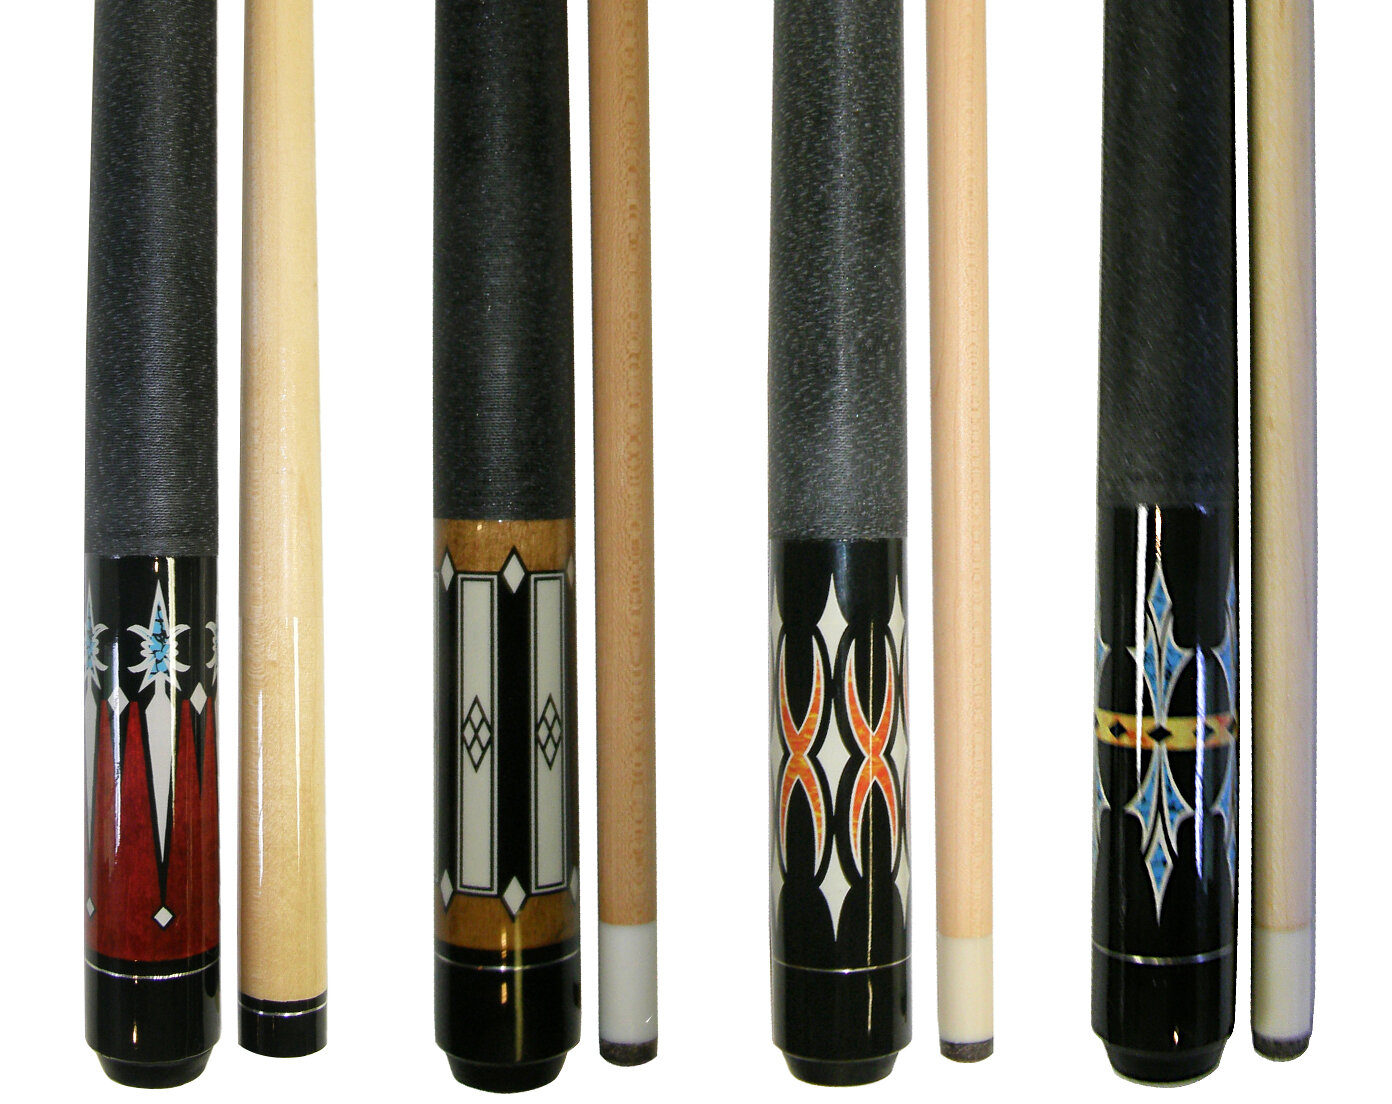 Pool Cues Billiard Cue Sticks Hardwood Wooden House Bar Use 58 Inch Pack of 4